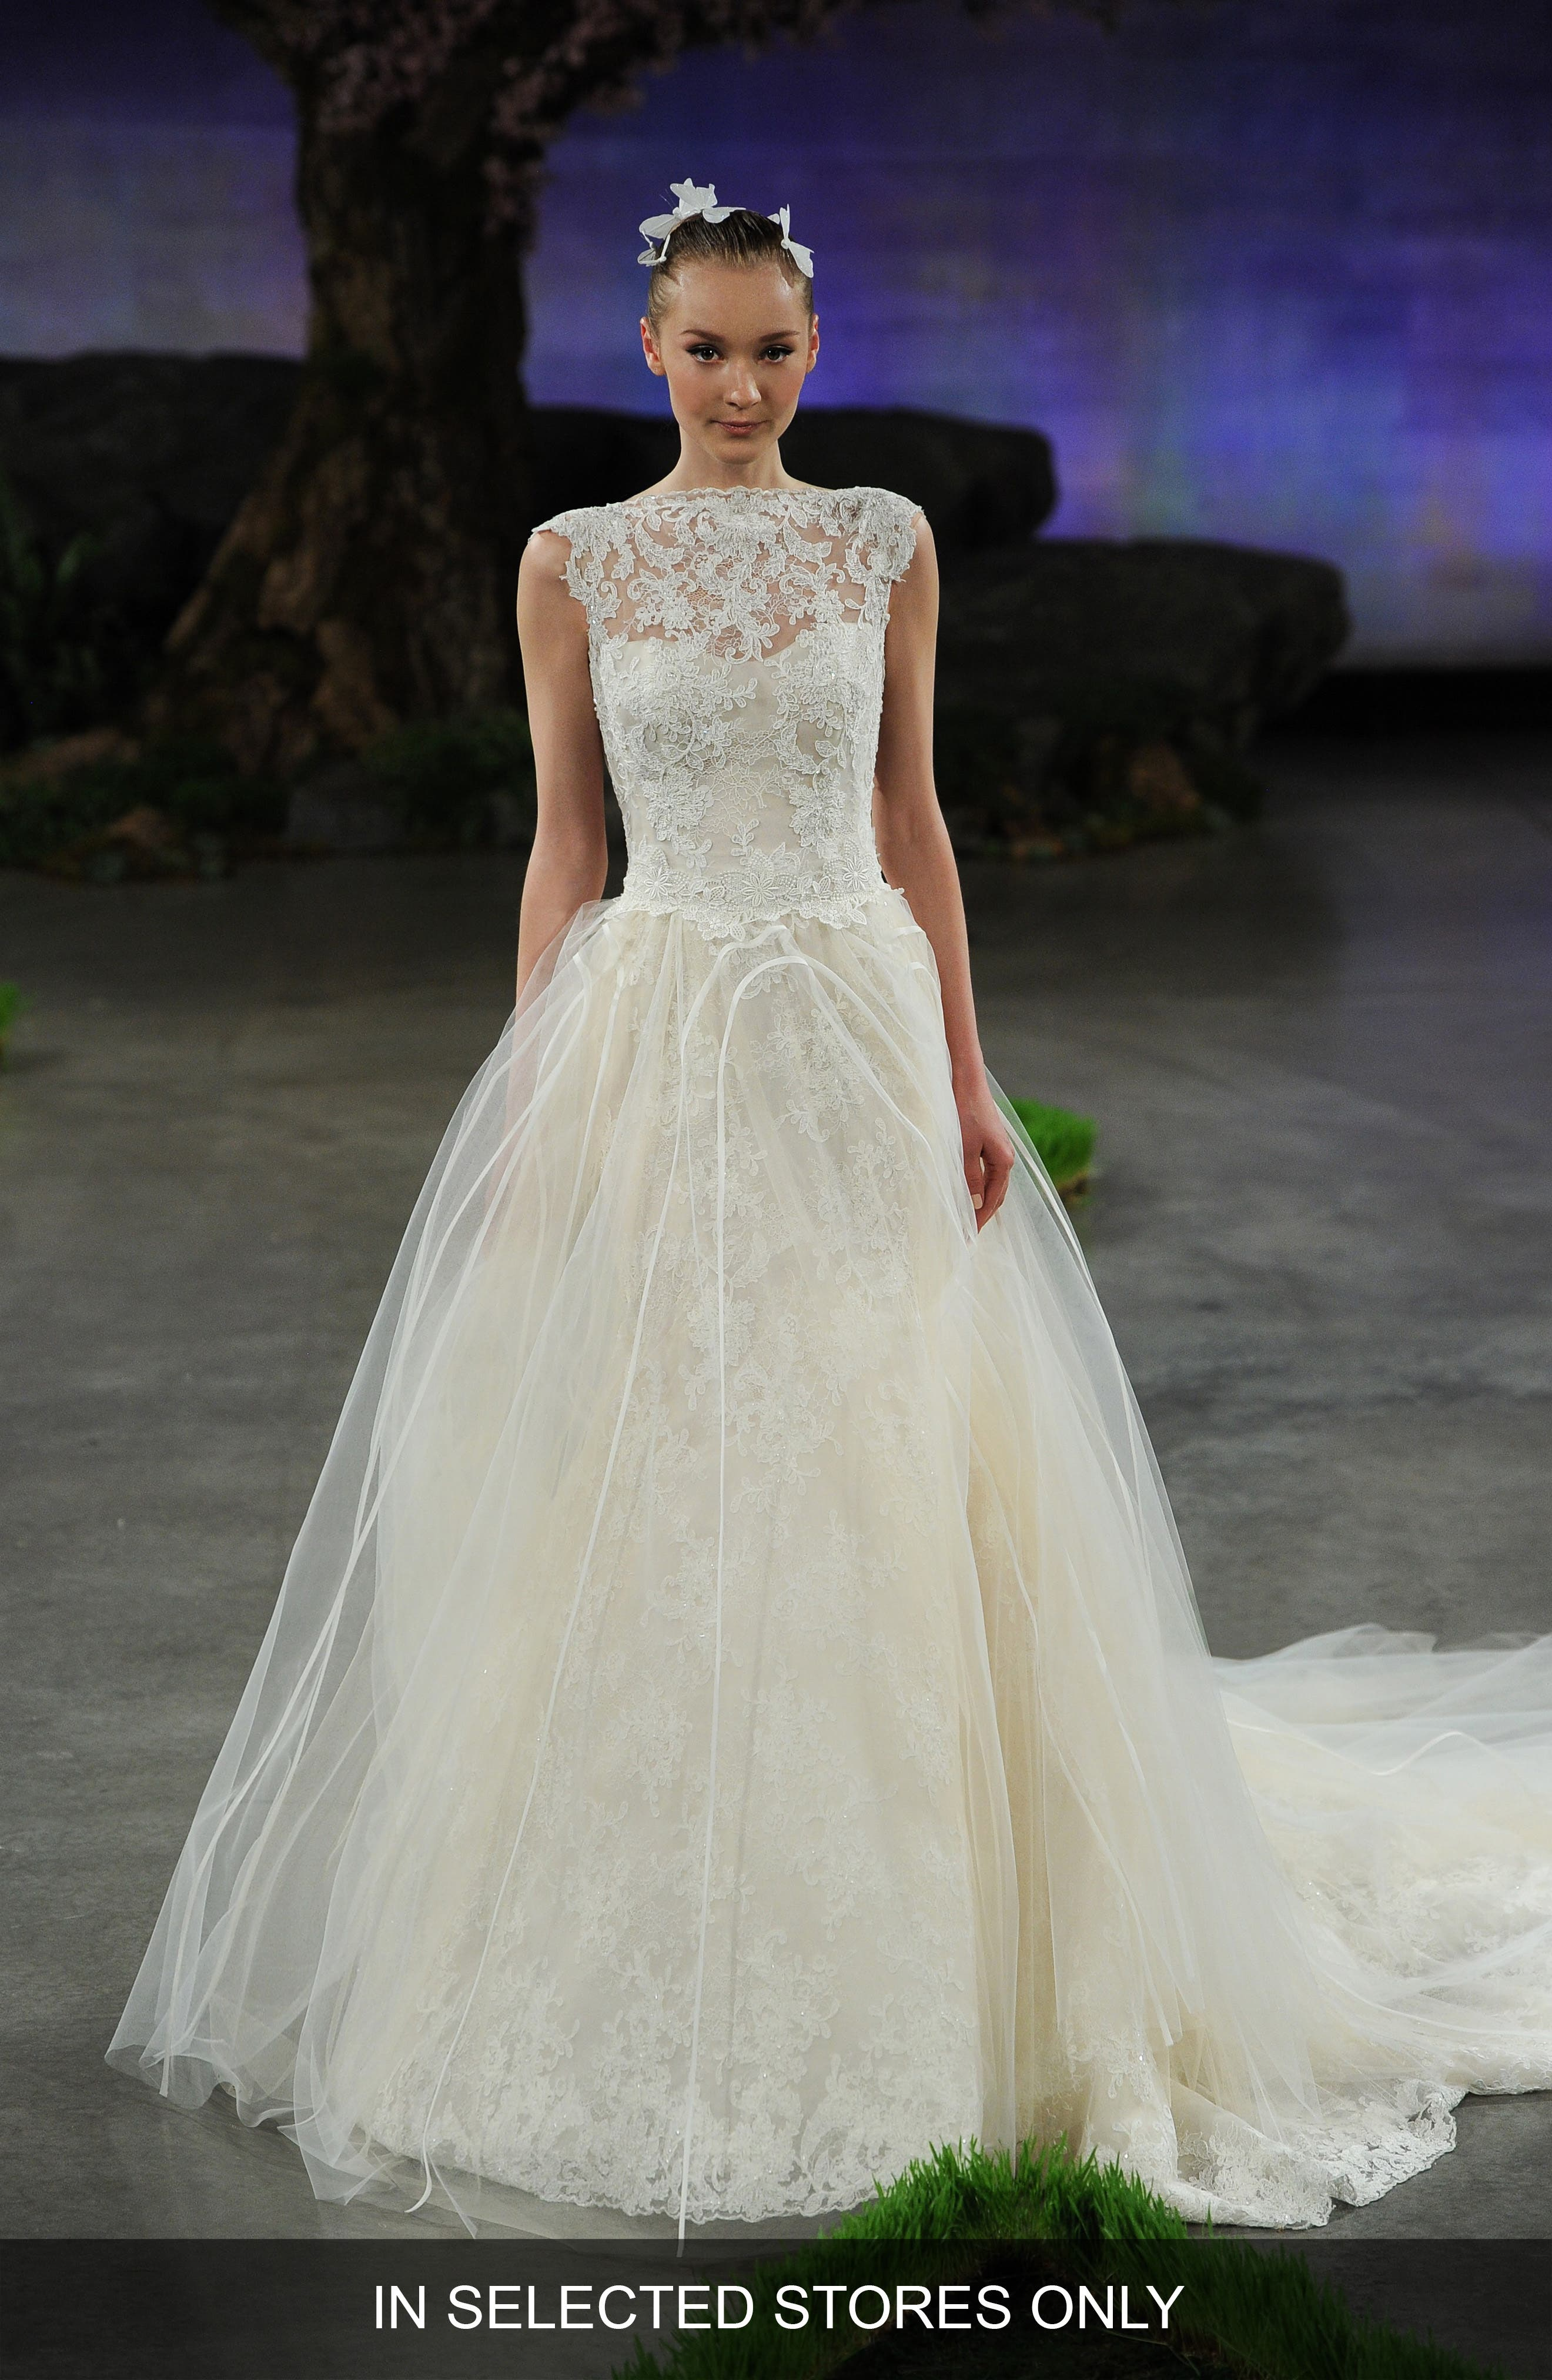 Ines Di Santo Margeaux Lace Tulle & Organza Overskirt with Detachable Train